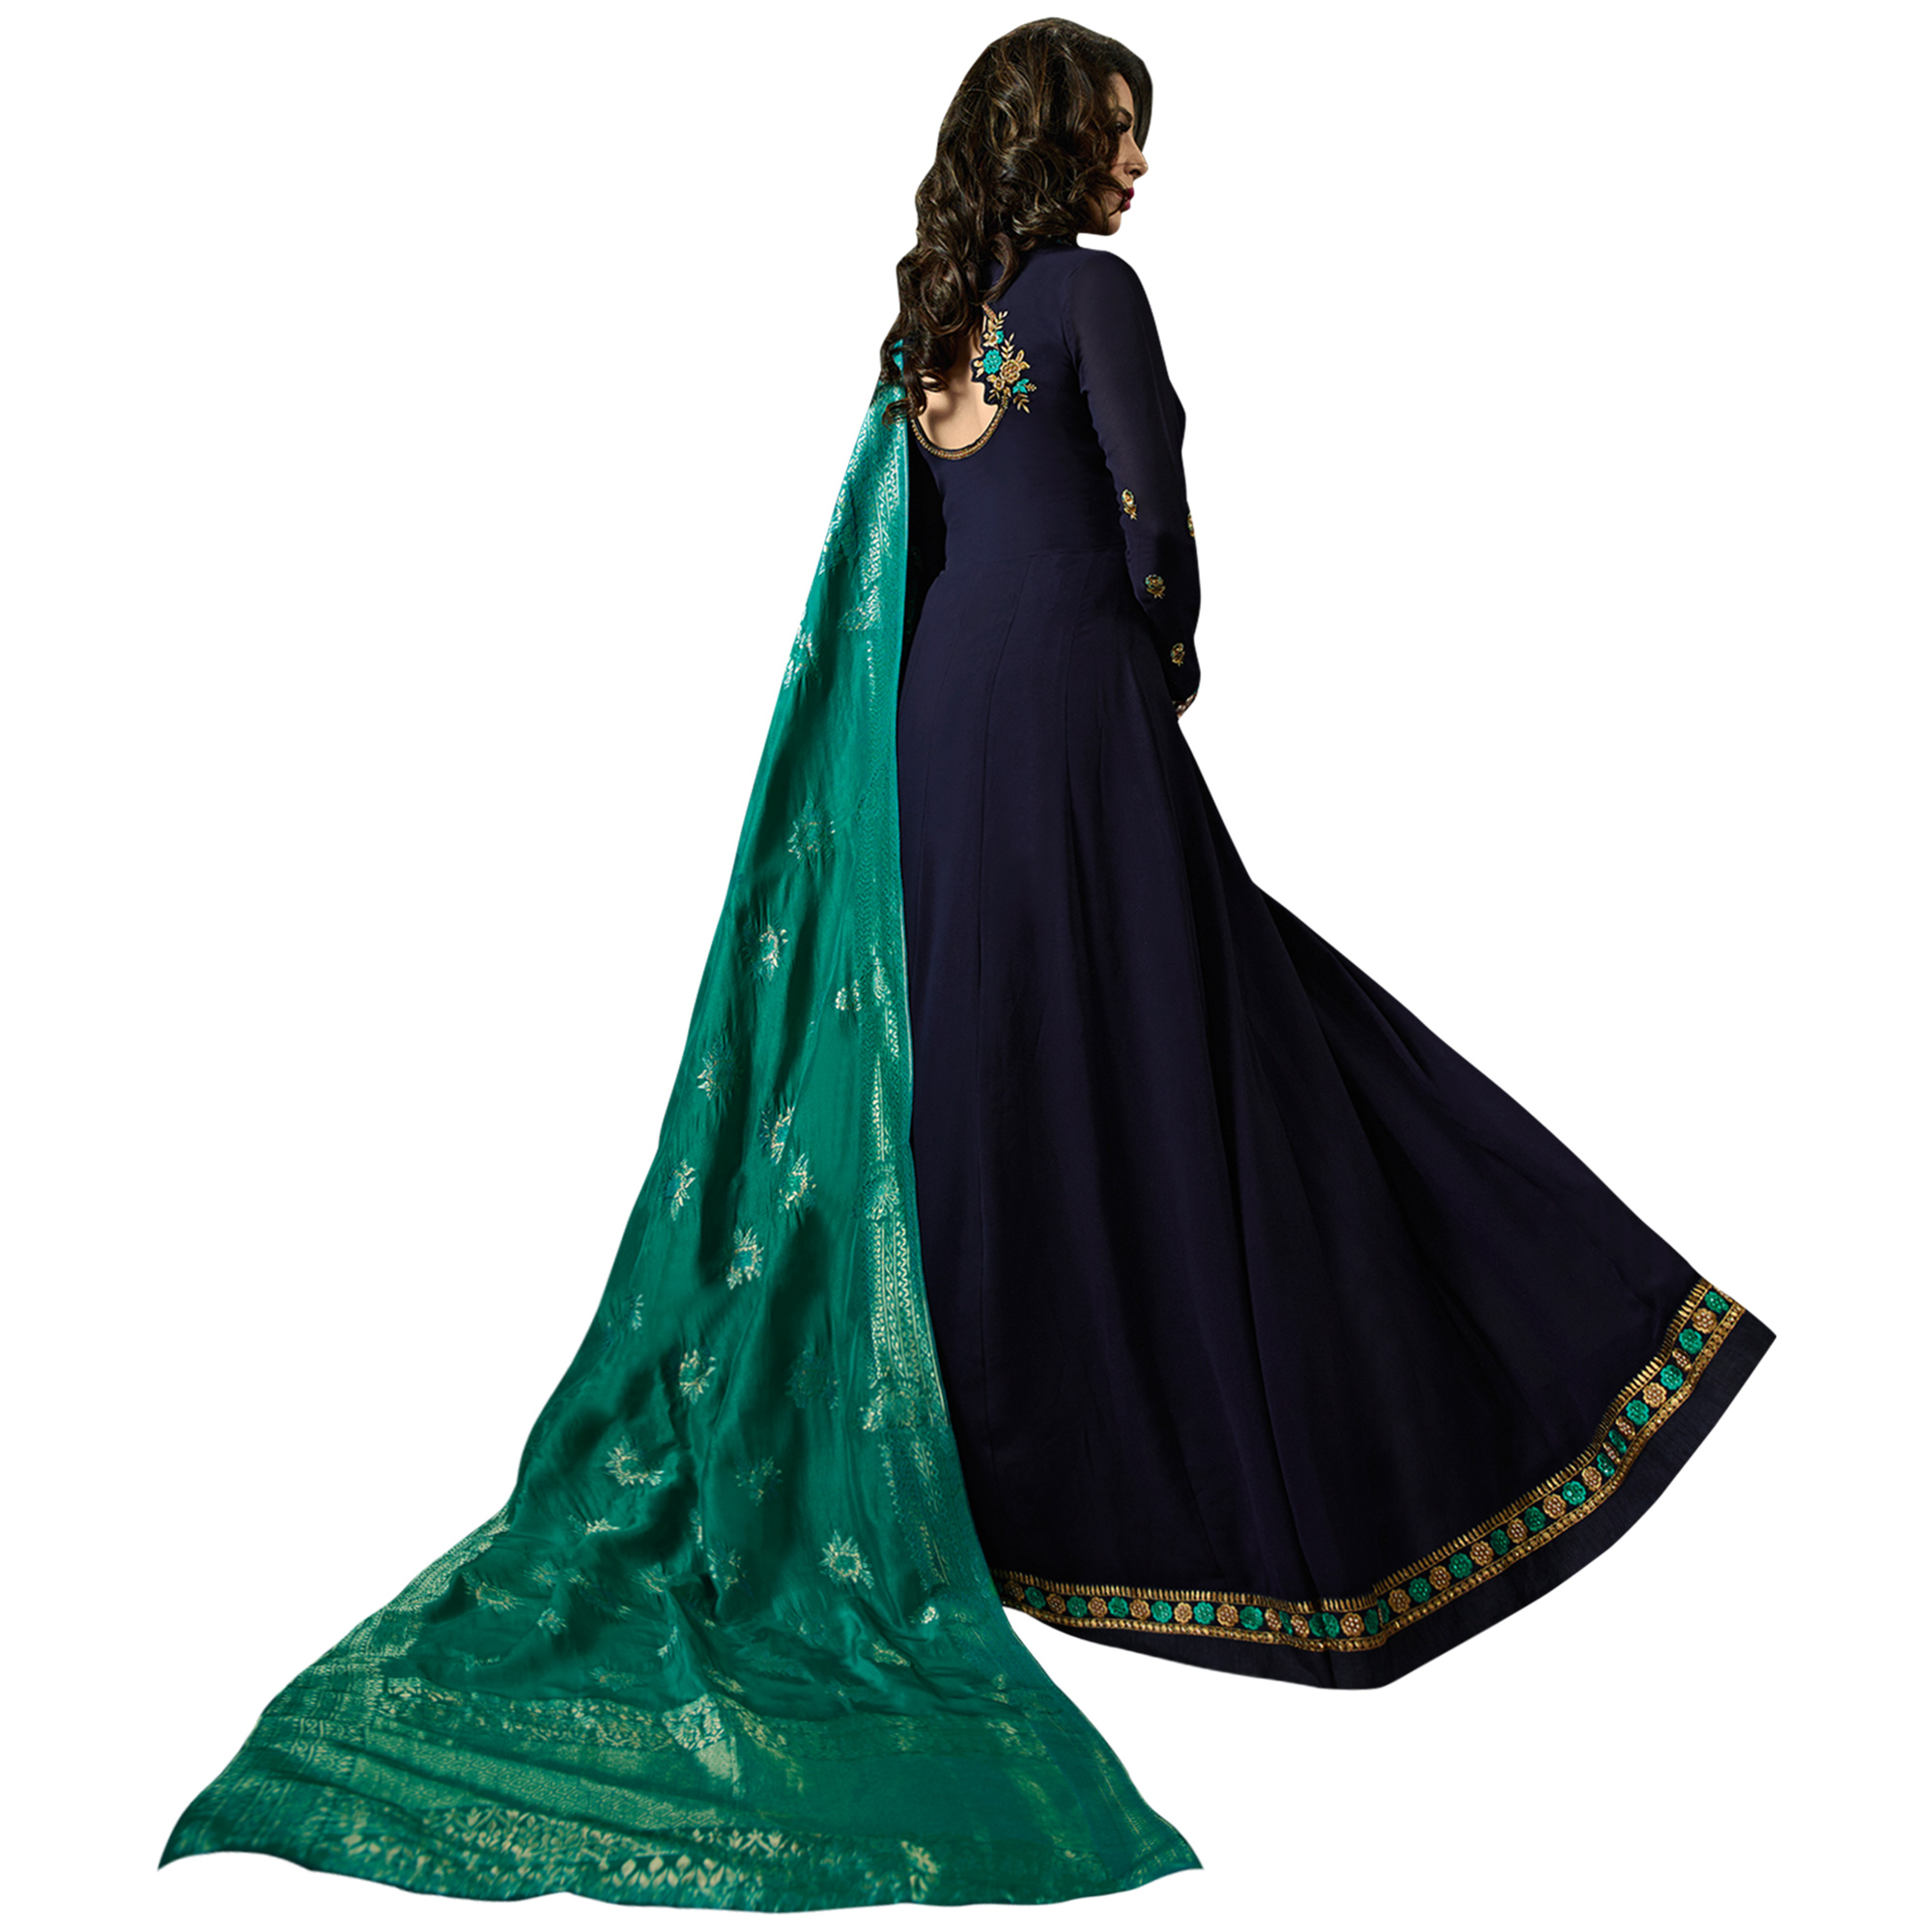 Desiring Navy Blue Colored Embroidered Georgette Anarkali Suit With Pure Banarasi Silk Dupatta